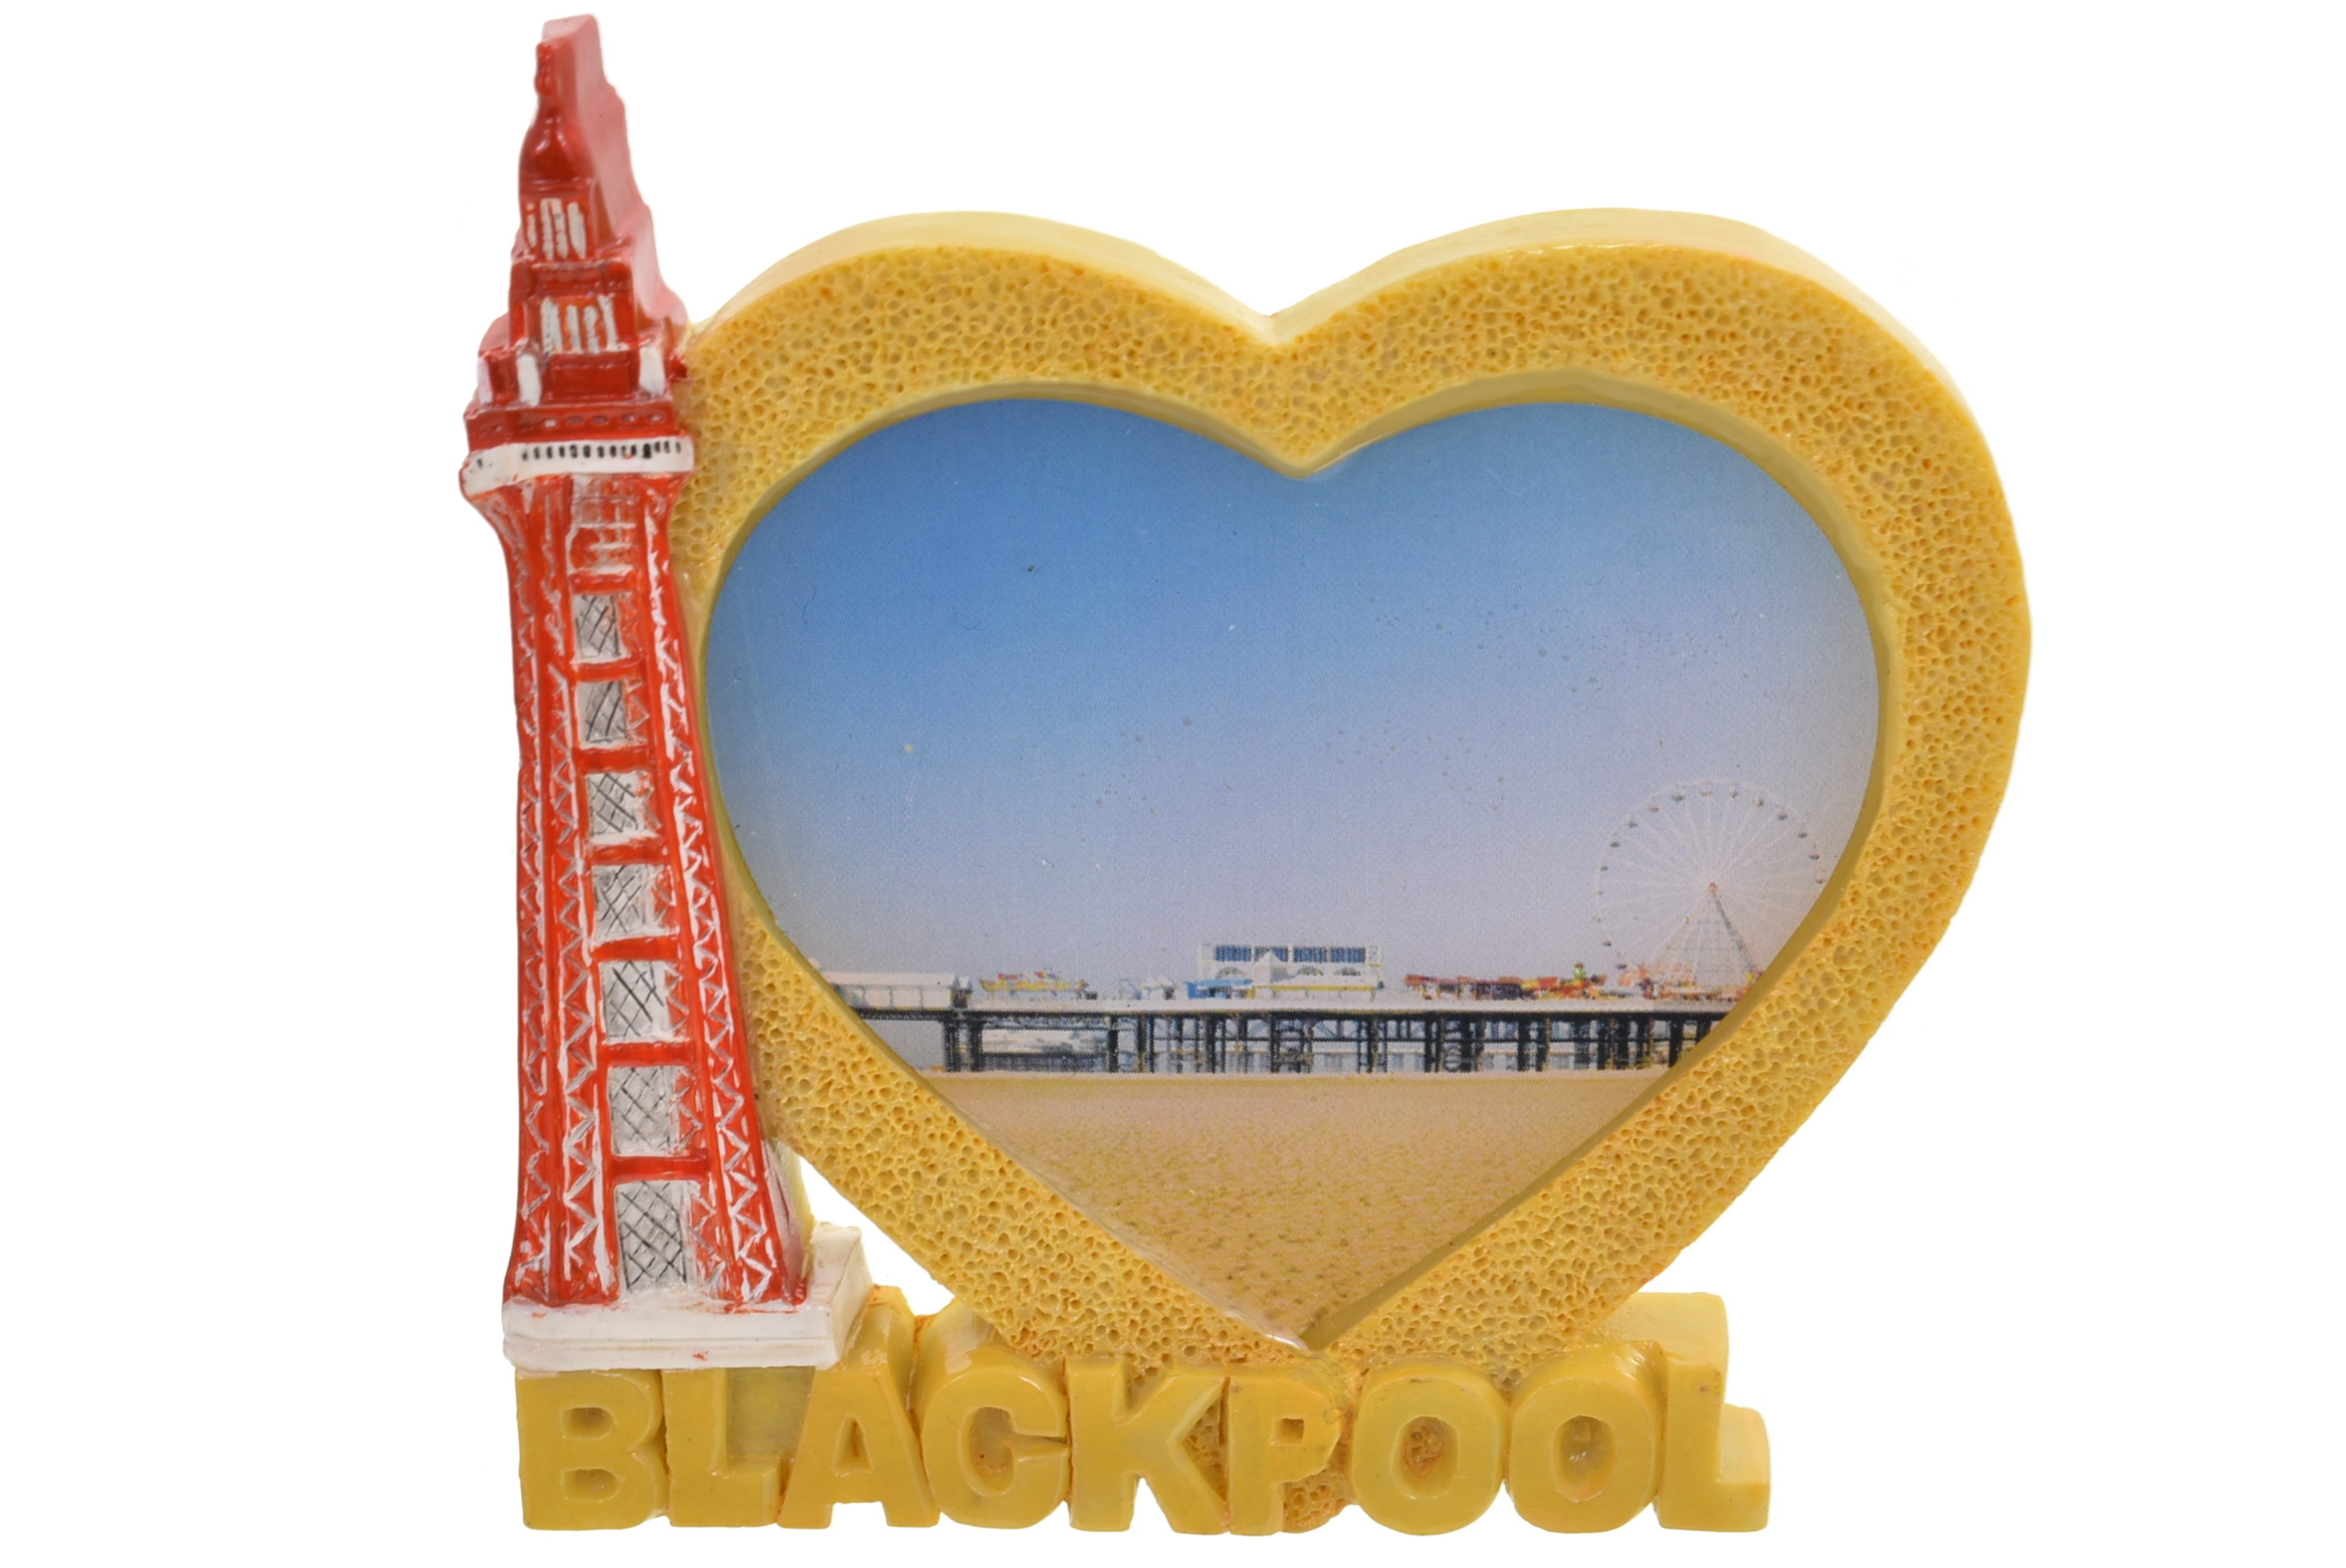 Blackpool Tower Heart Pier Magnet